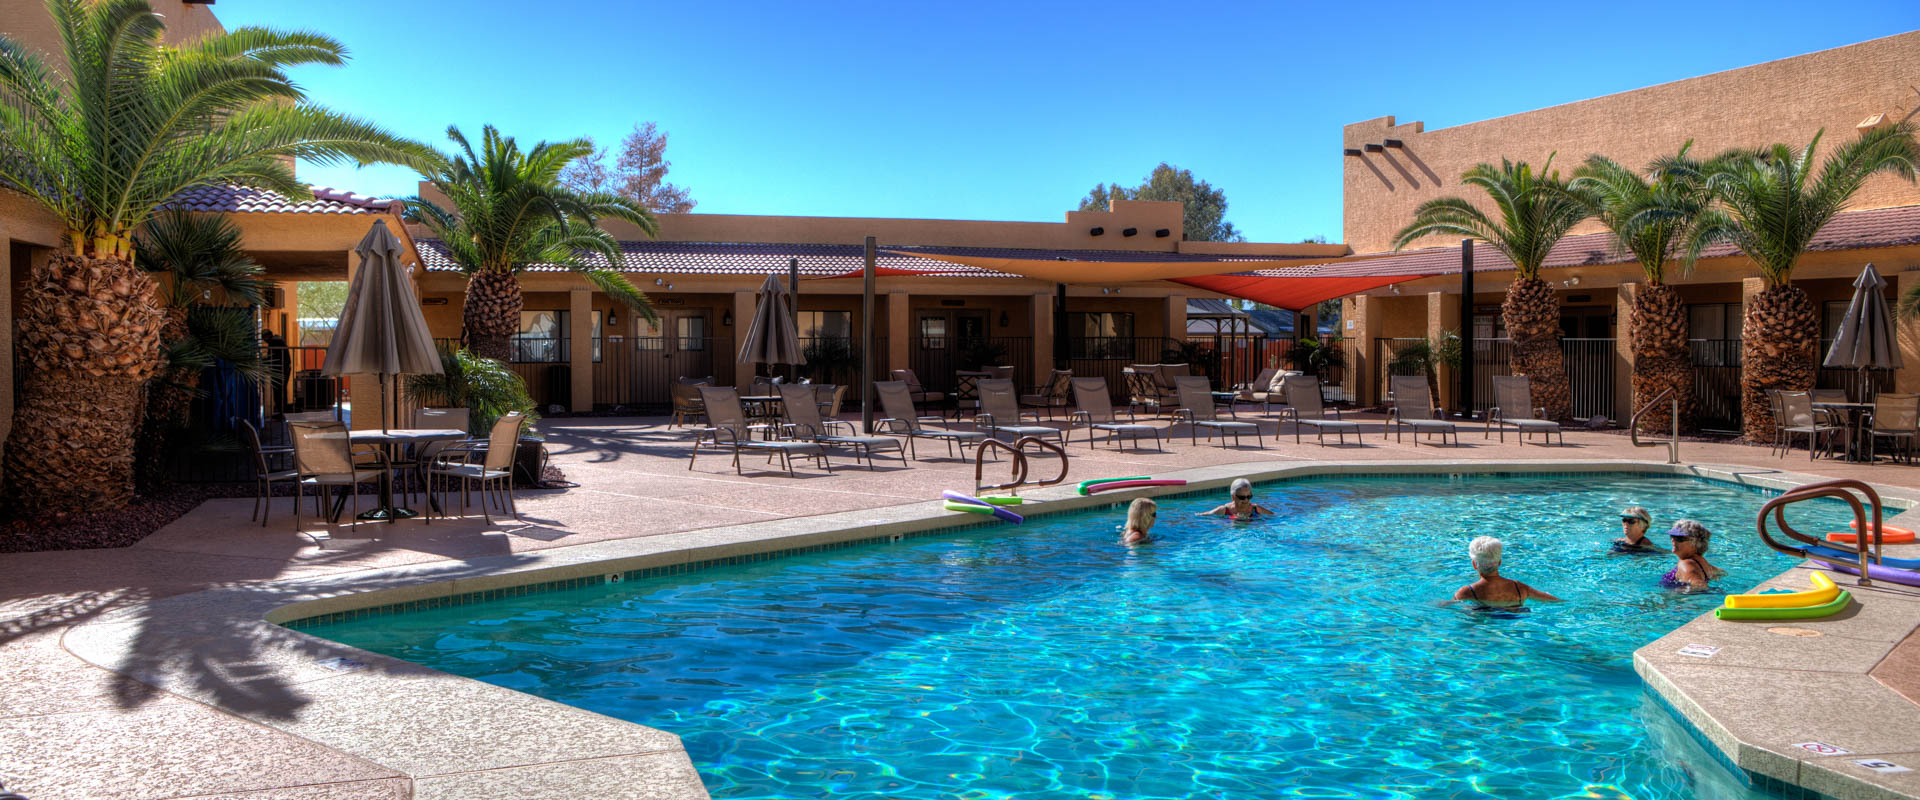 Sundance 1 RV Resort's swimming pool area